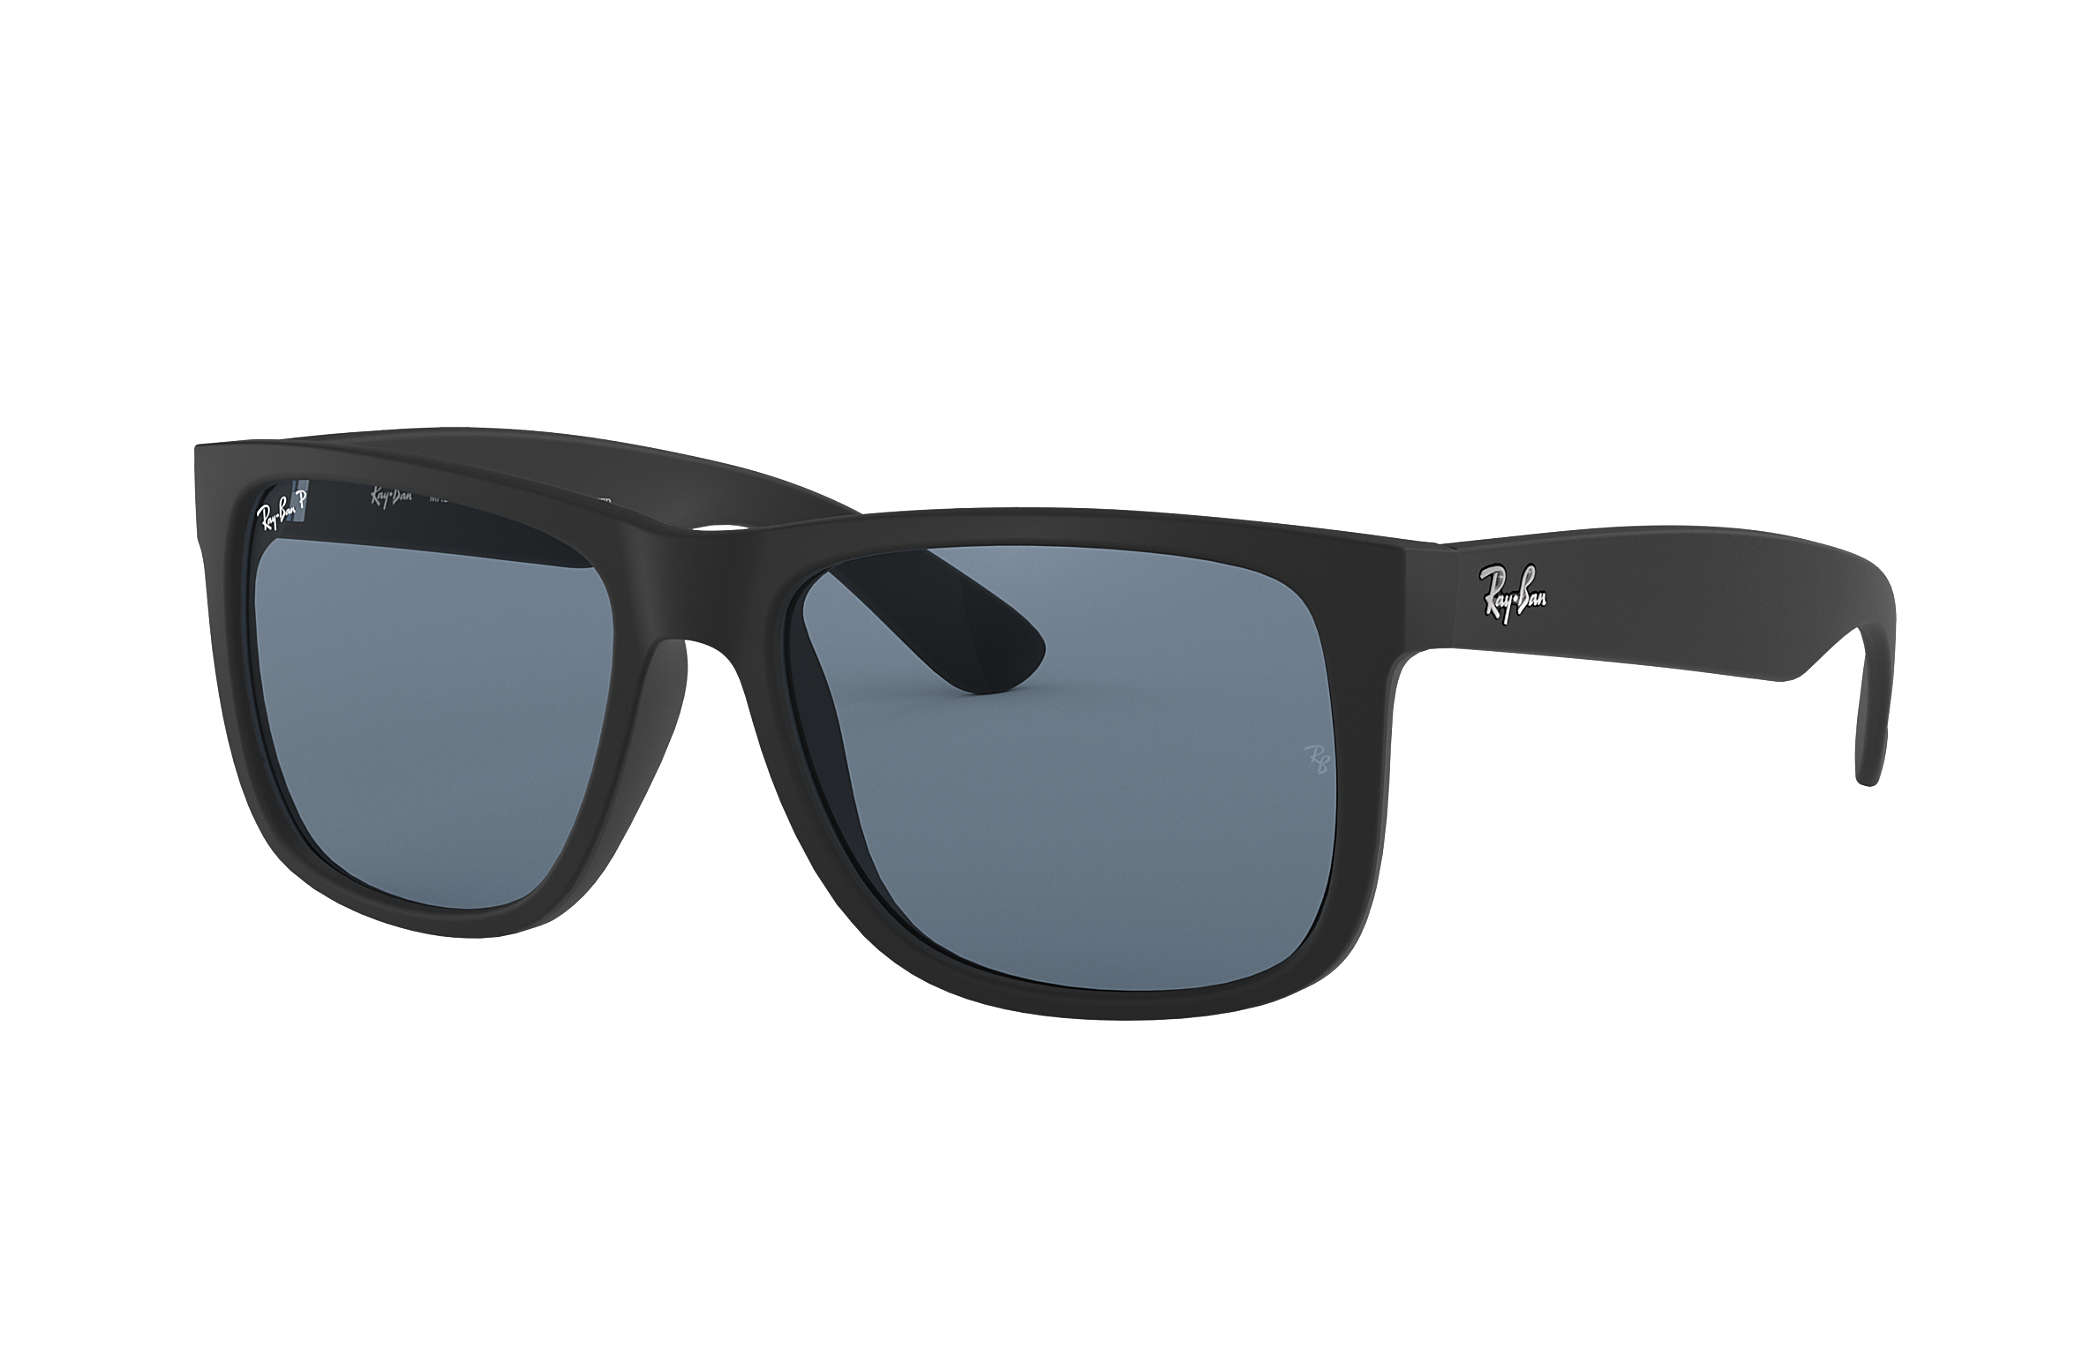 repuestos gafas ray ban madrid